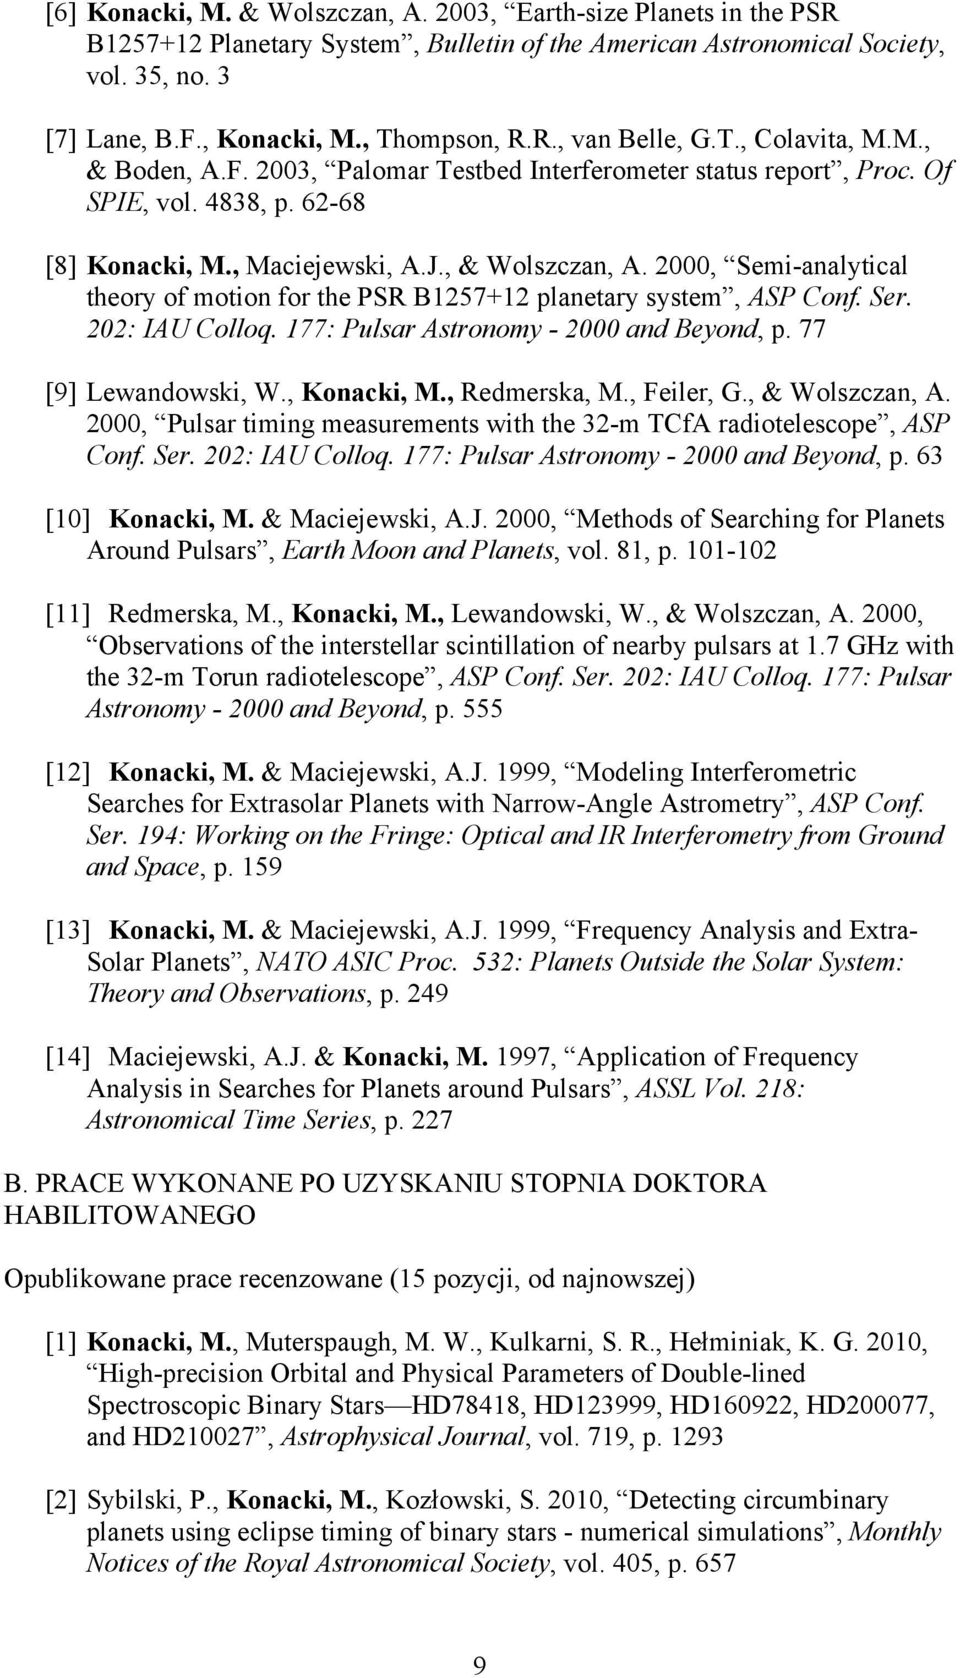 2000, Semi-analytical theory of motion for the PSR B1257+12 planetary system, ASP Conf. Ser. 202: IAU Colloq. 177: Pulsar Astronomy - 2000 and Beyond, p. 77 [9] Lewandowski, W., Konacki, M.